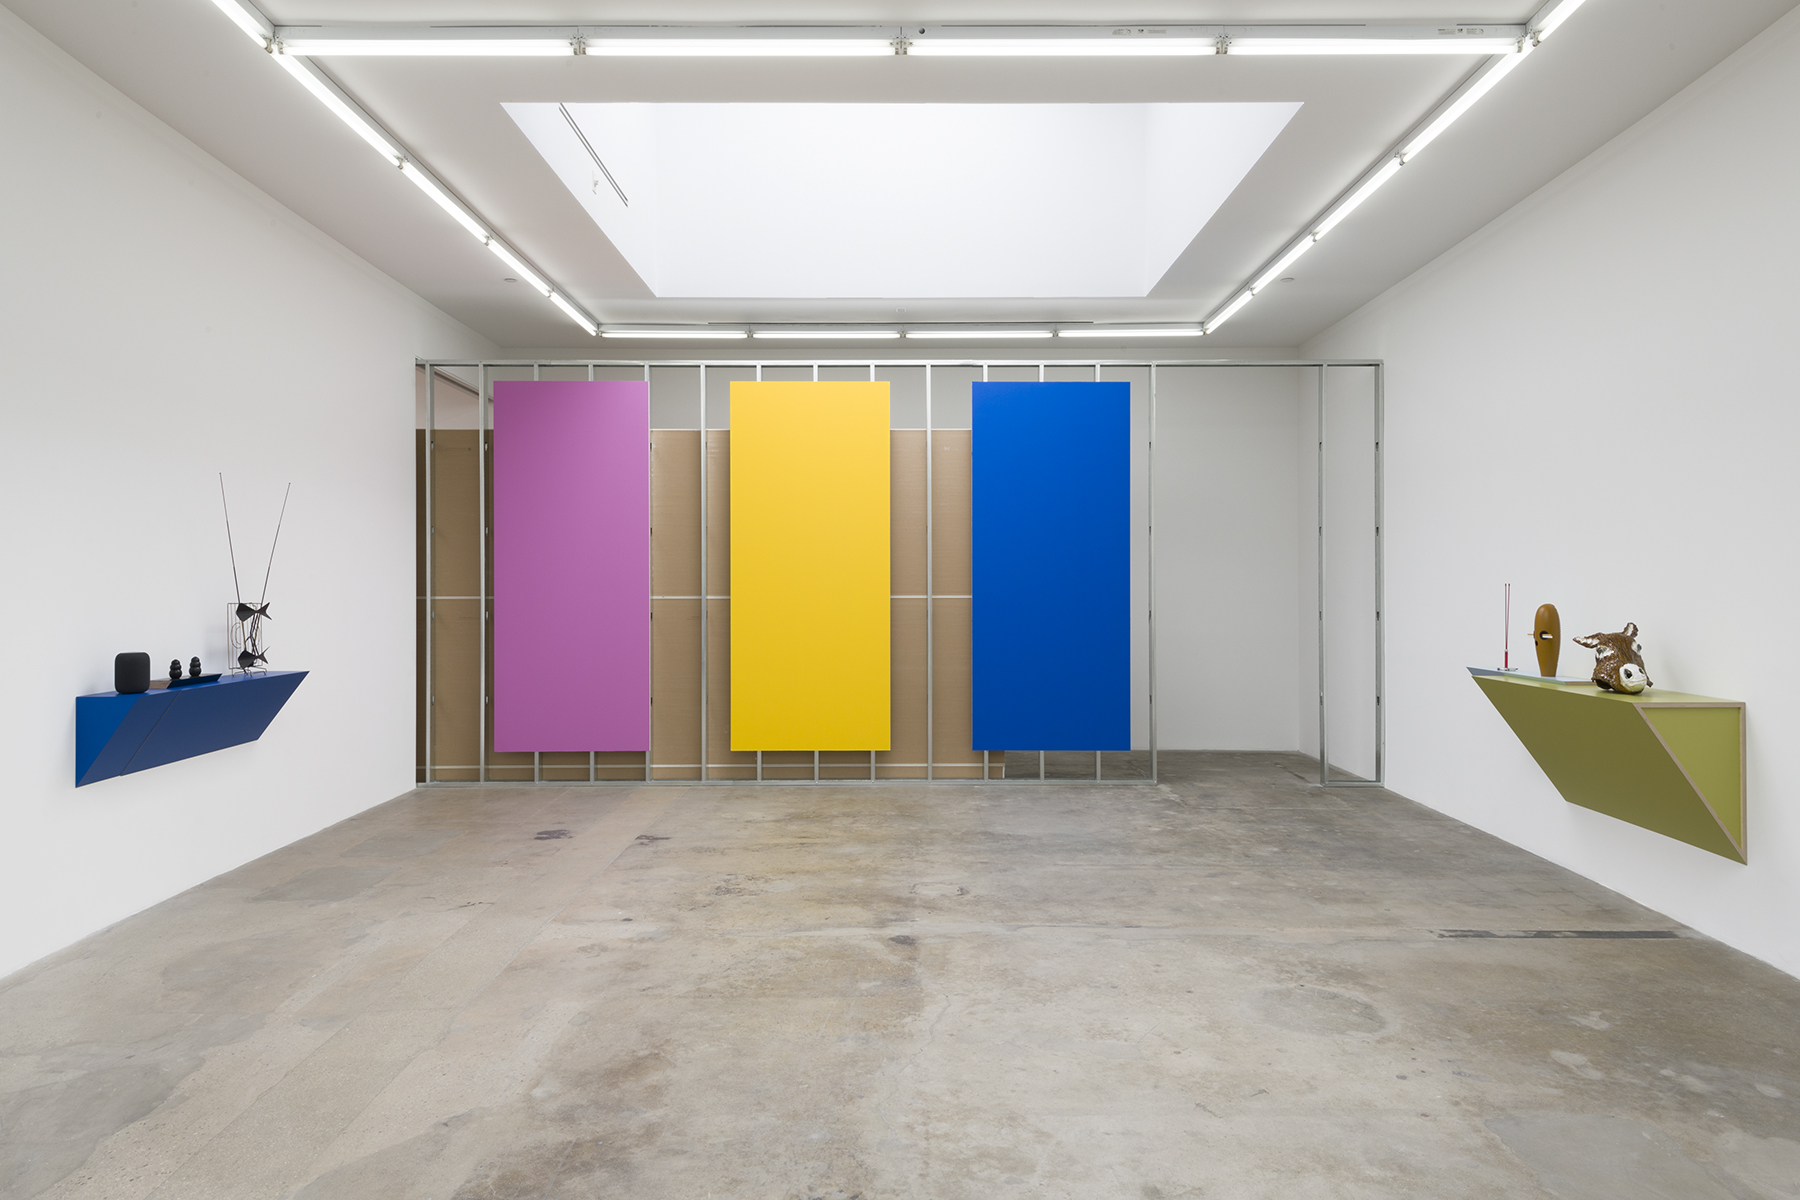 Display #105 – pinkraspberry, yellowsubmarine, bluevelve t (installation view), 2019, Galvanized steel stud wall, plasterboard panels, acrylic paint, 120 x 292 x 4 5/8 inches (304.8 x 741.7 x 11.7 cm), Edition of 2. Courtesy the artist and Tanya Bonakdar Gallery, New York / Los Angeles